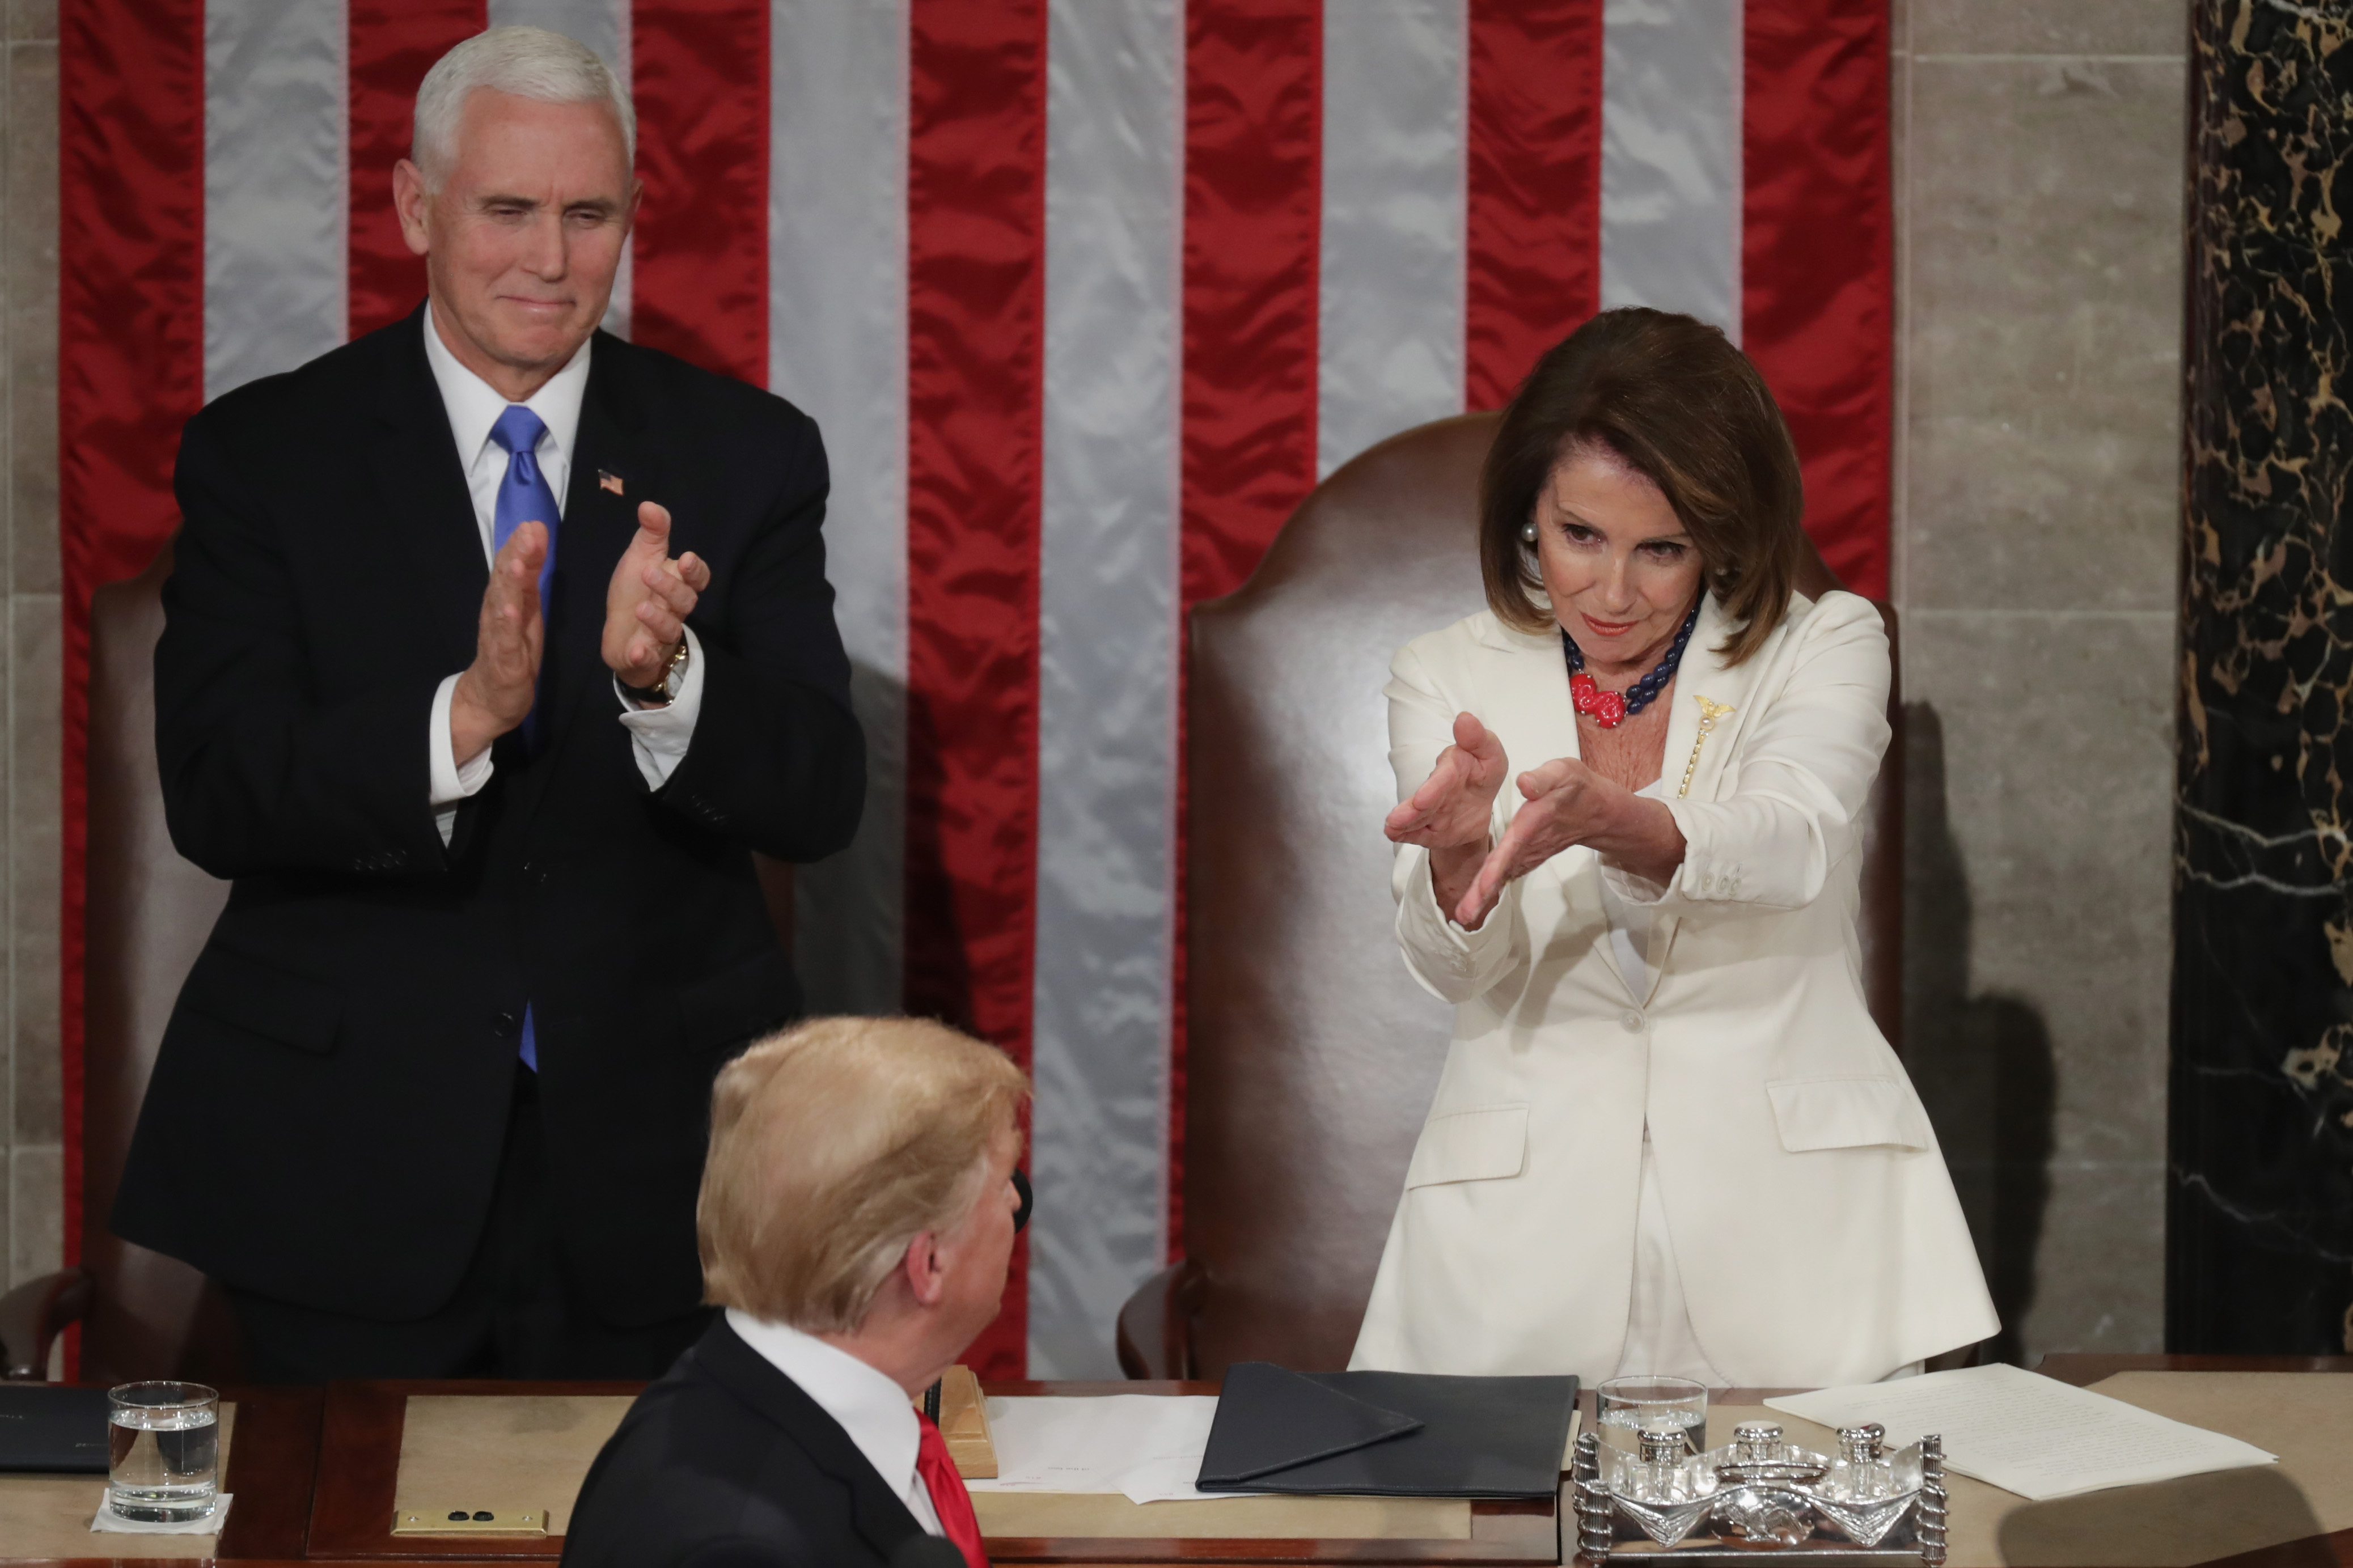 Speaker of the House Nancy Pelosi at President Trump's 2019 State of the Union address.